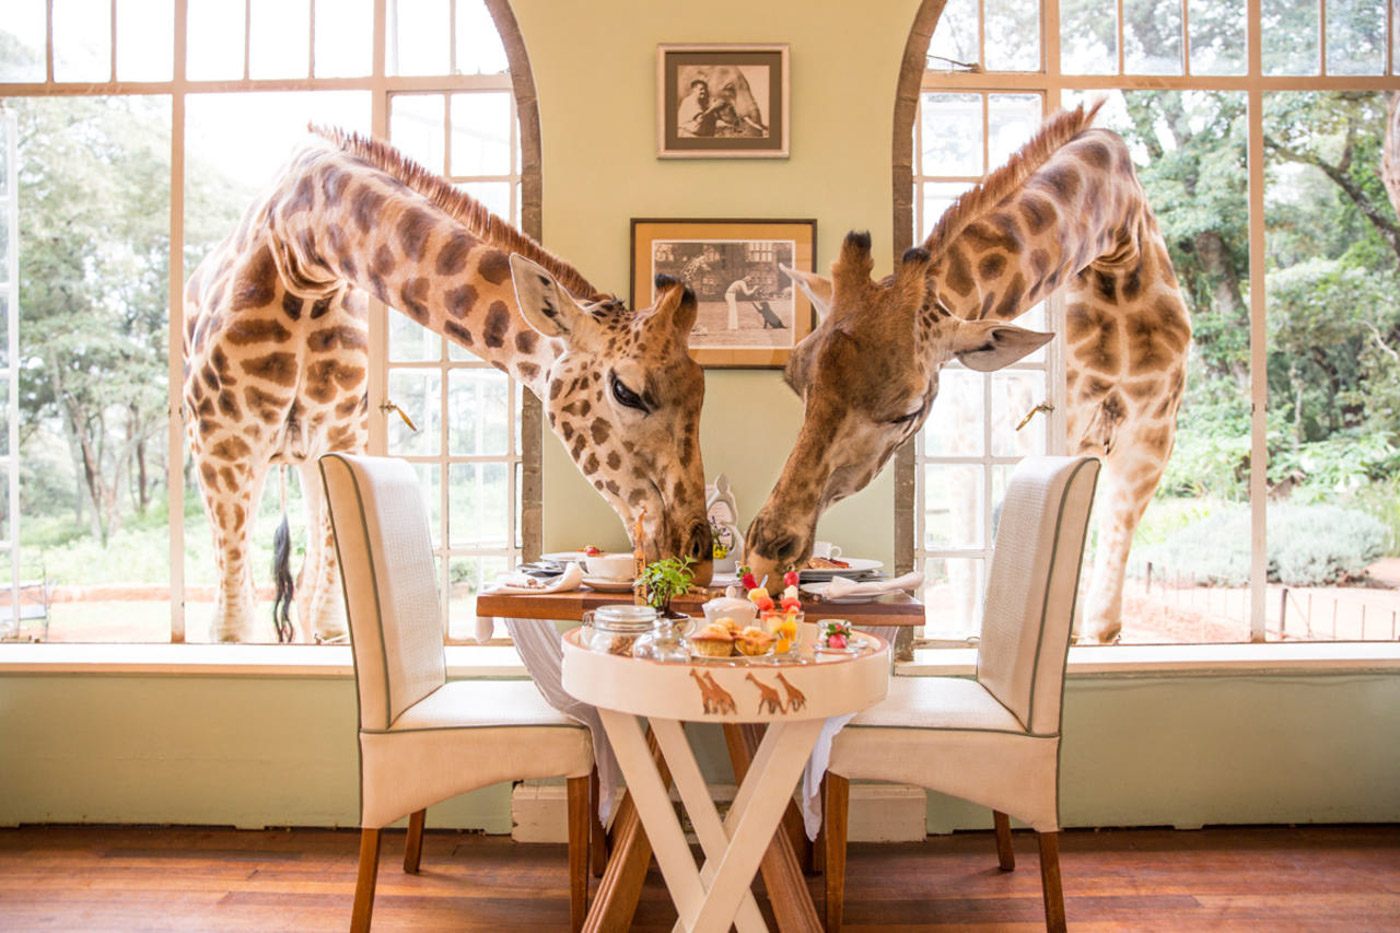 Giraffe Manor_9.jpg